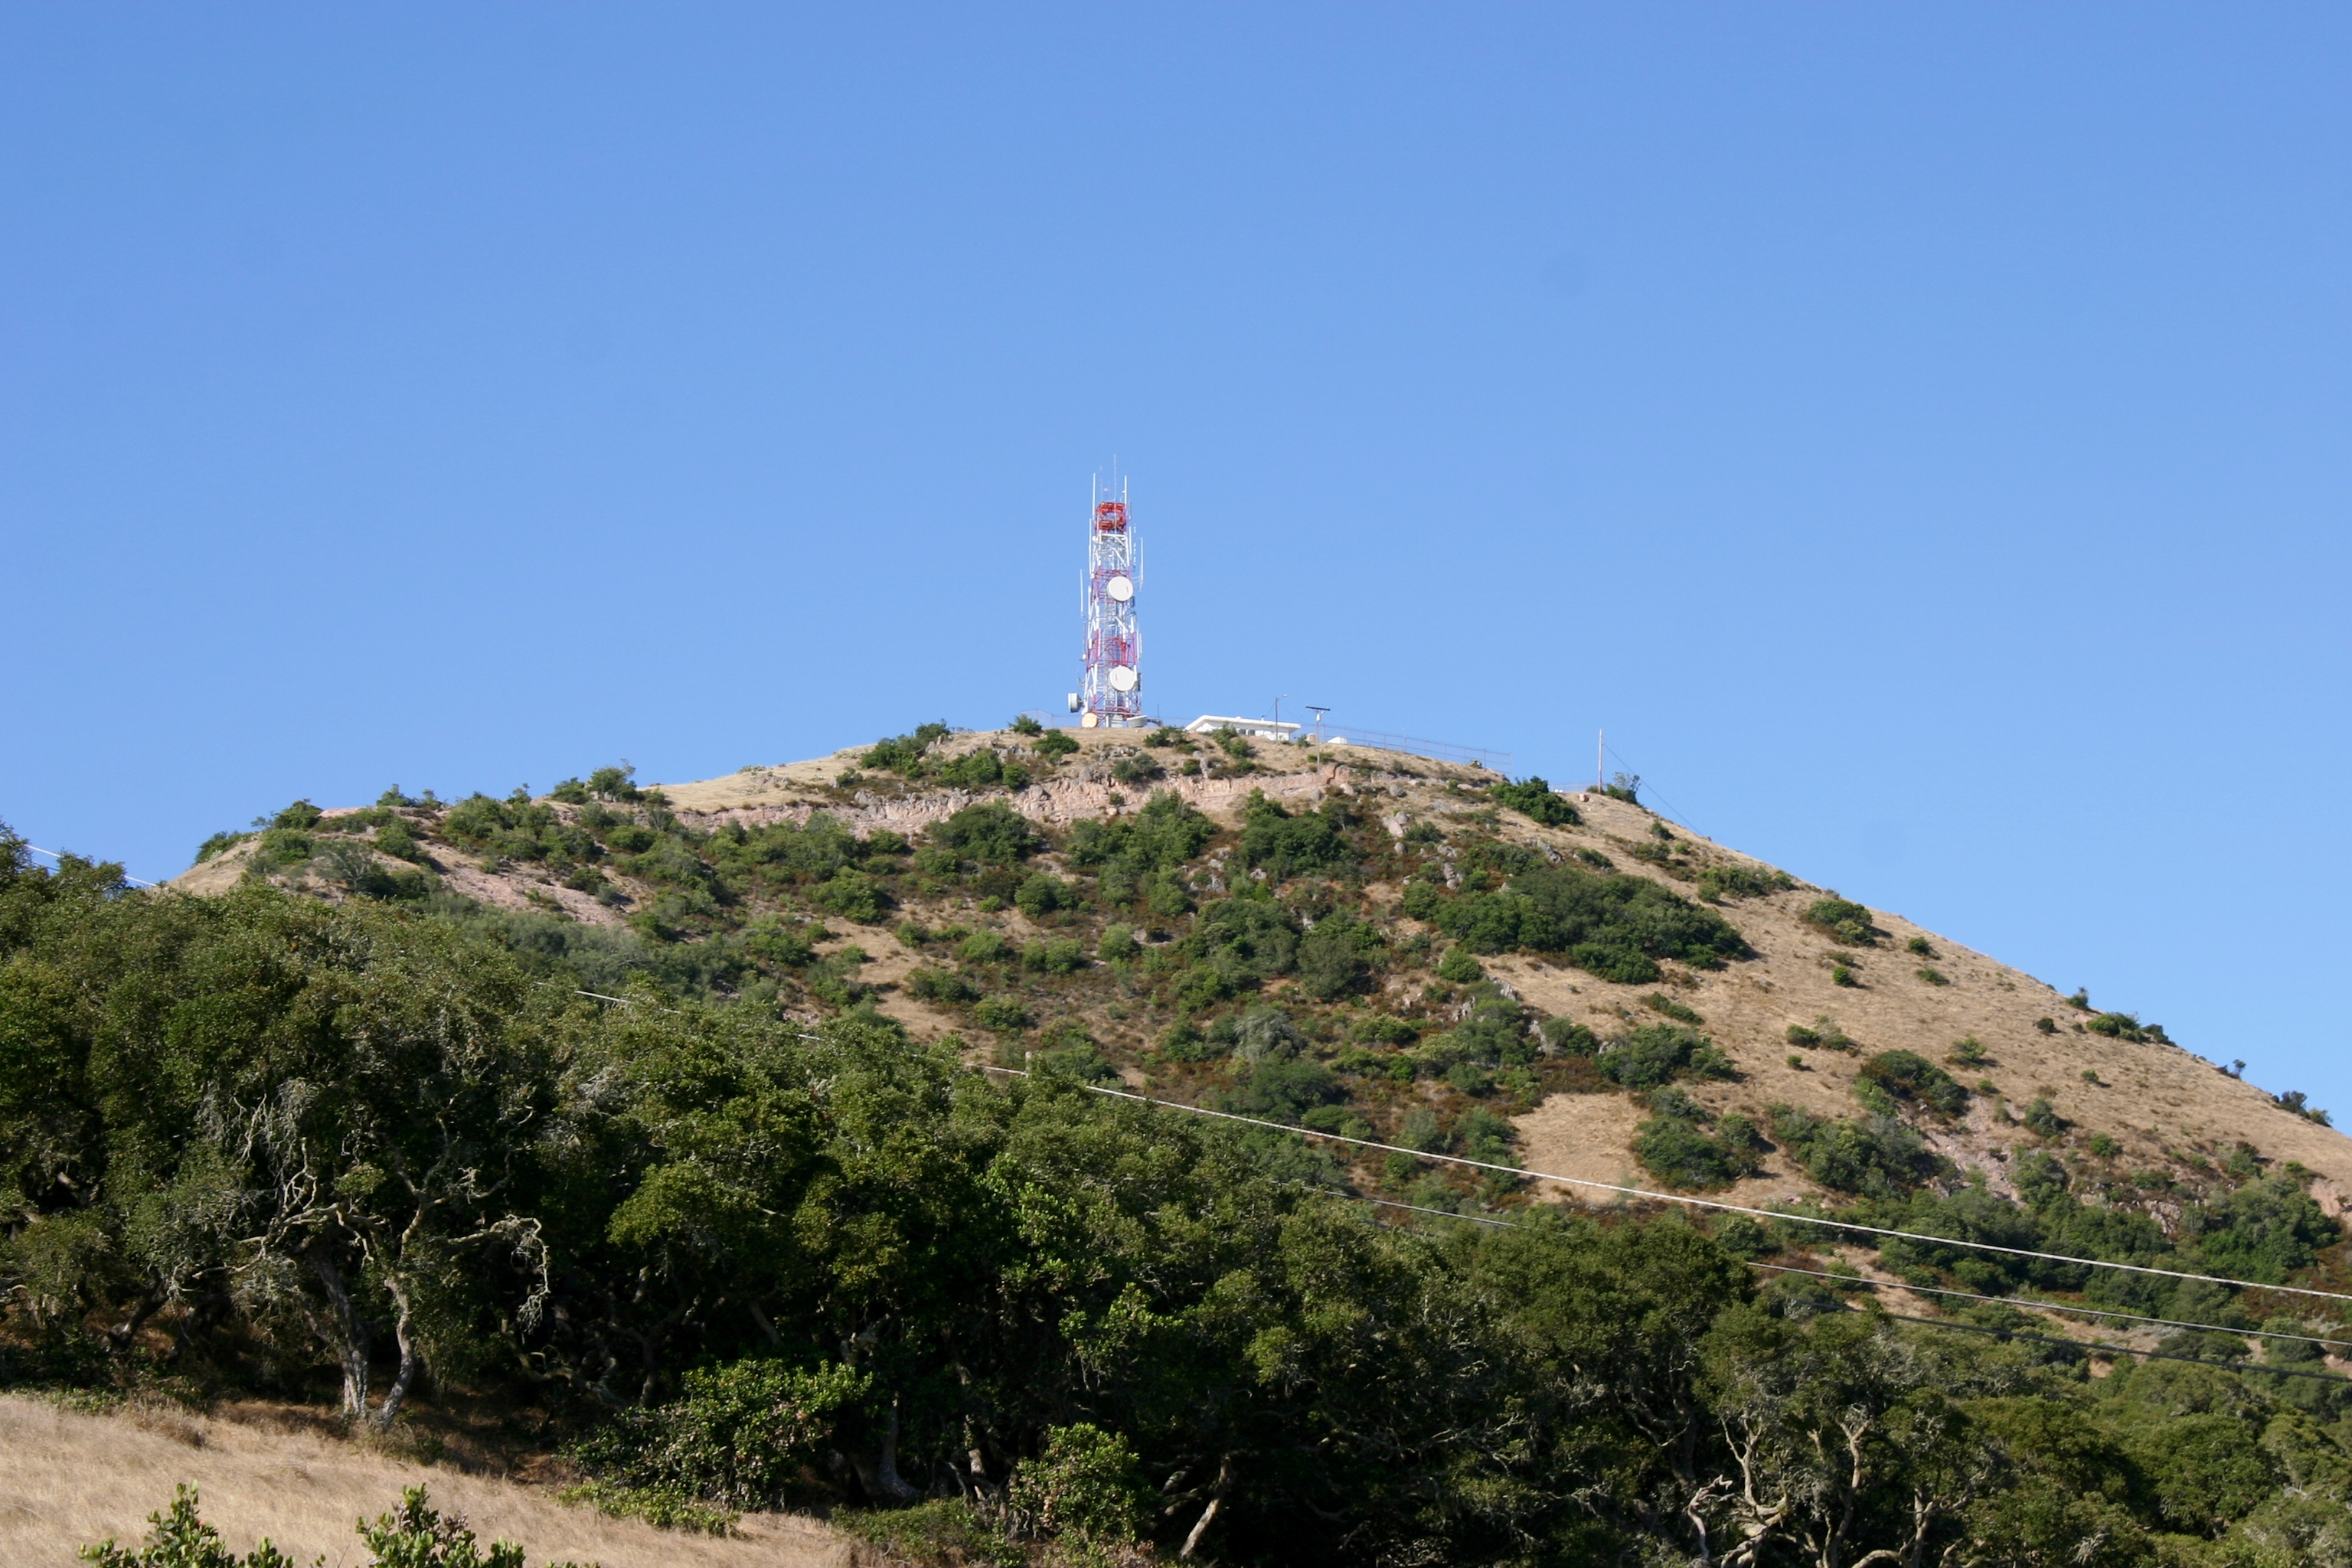 helicopter rides to catalina with 7 20 12 Catalina Island on 3537 High 5s Labor Day Sail 30 furthermore Helicopter Tour Malibu furthermore Five Best Dude Ranches Around The World besides 7 20 12 Catalina Island moreover Watch.